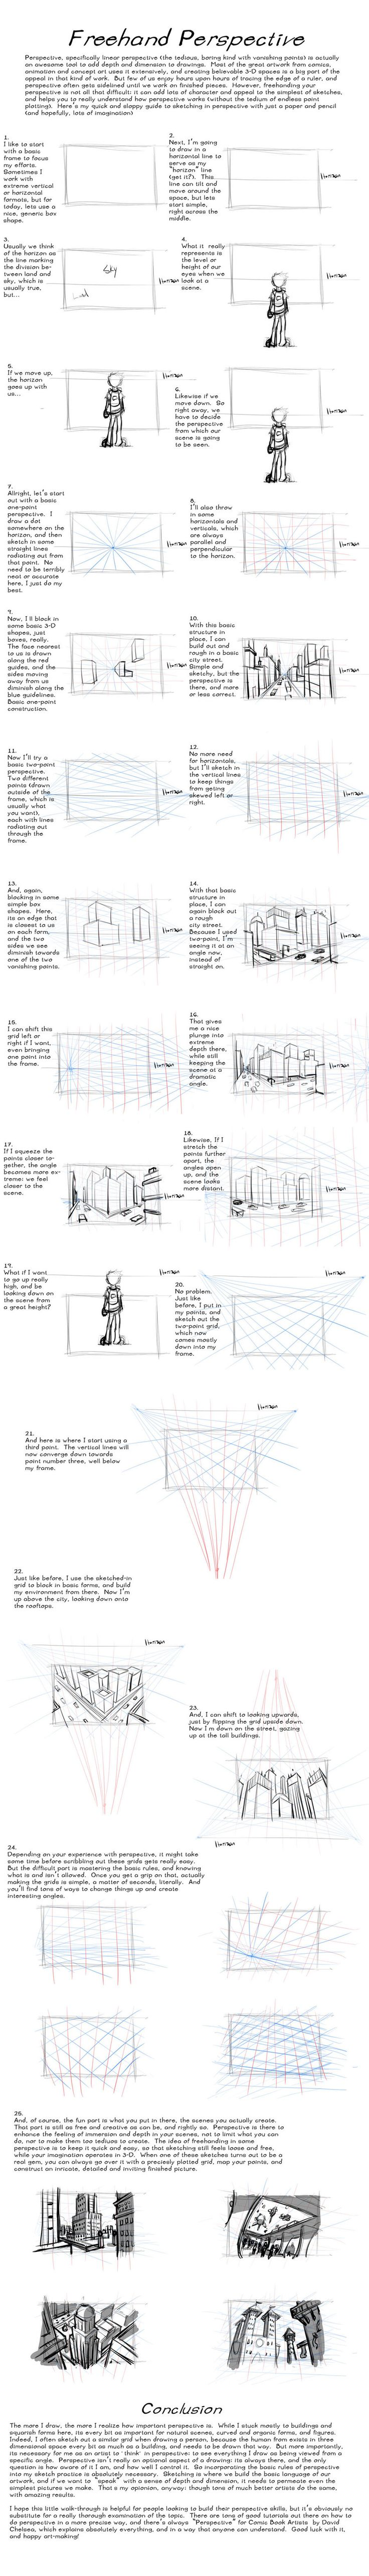 25+ best ideas about Perspective drawing on Pinterest ...